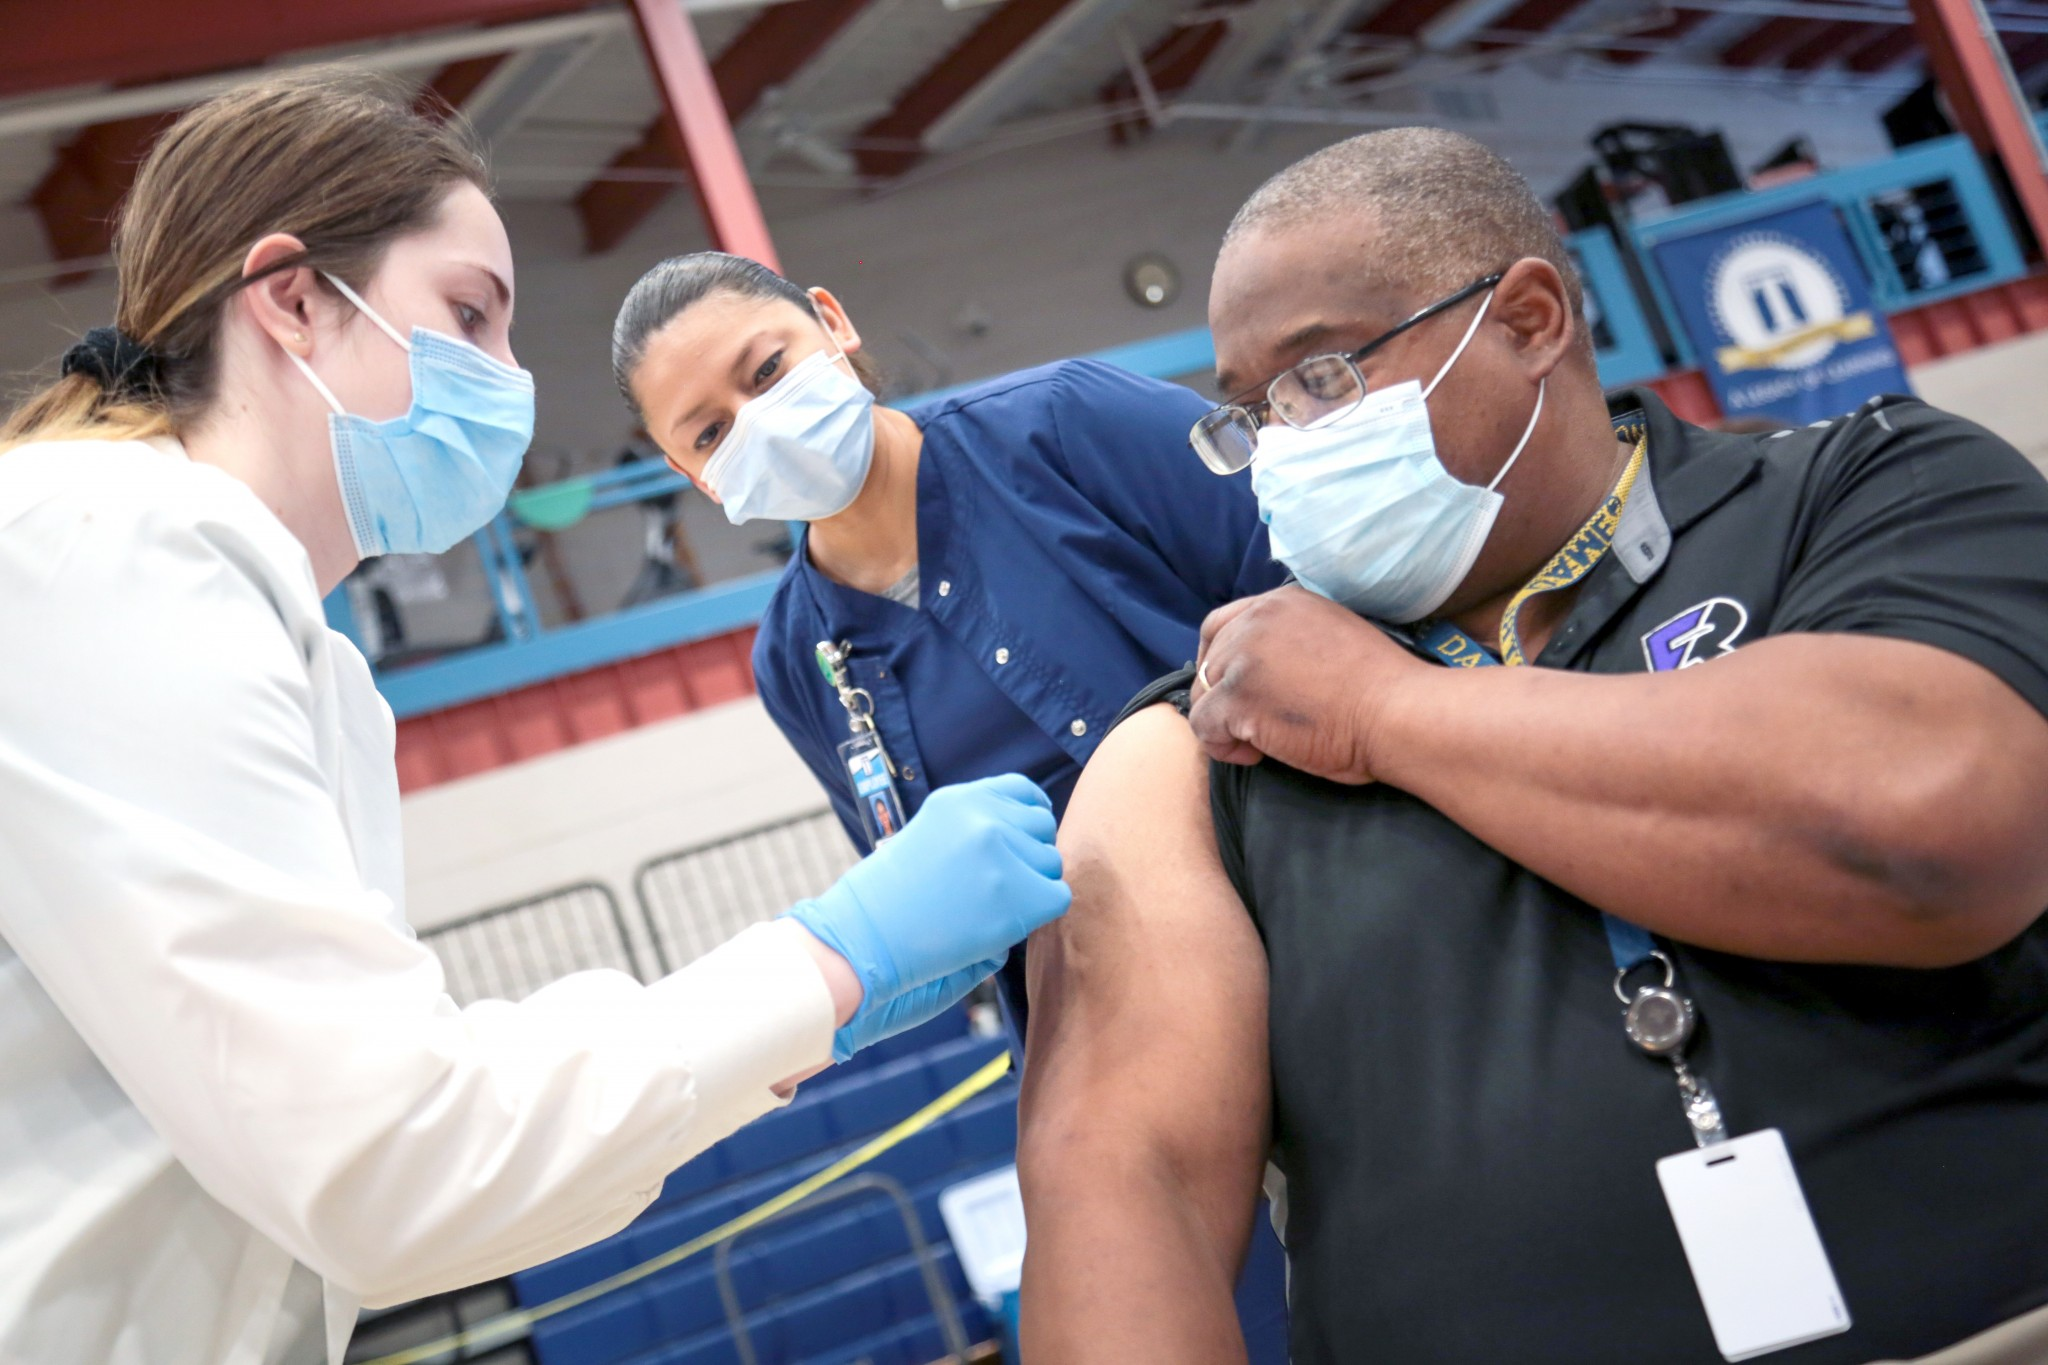 Terra State Community College medical assisting, nursing and health information technology (HIT) students and staff volunteered to help Sandusky County Public Health in their efforts to vaccinate school personnel at a clinic held Feb. 24.